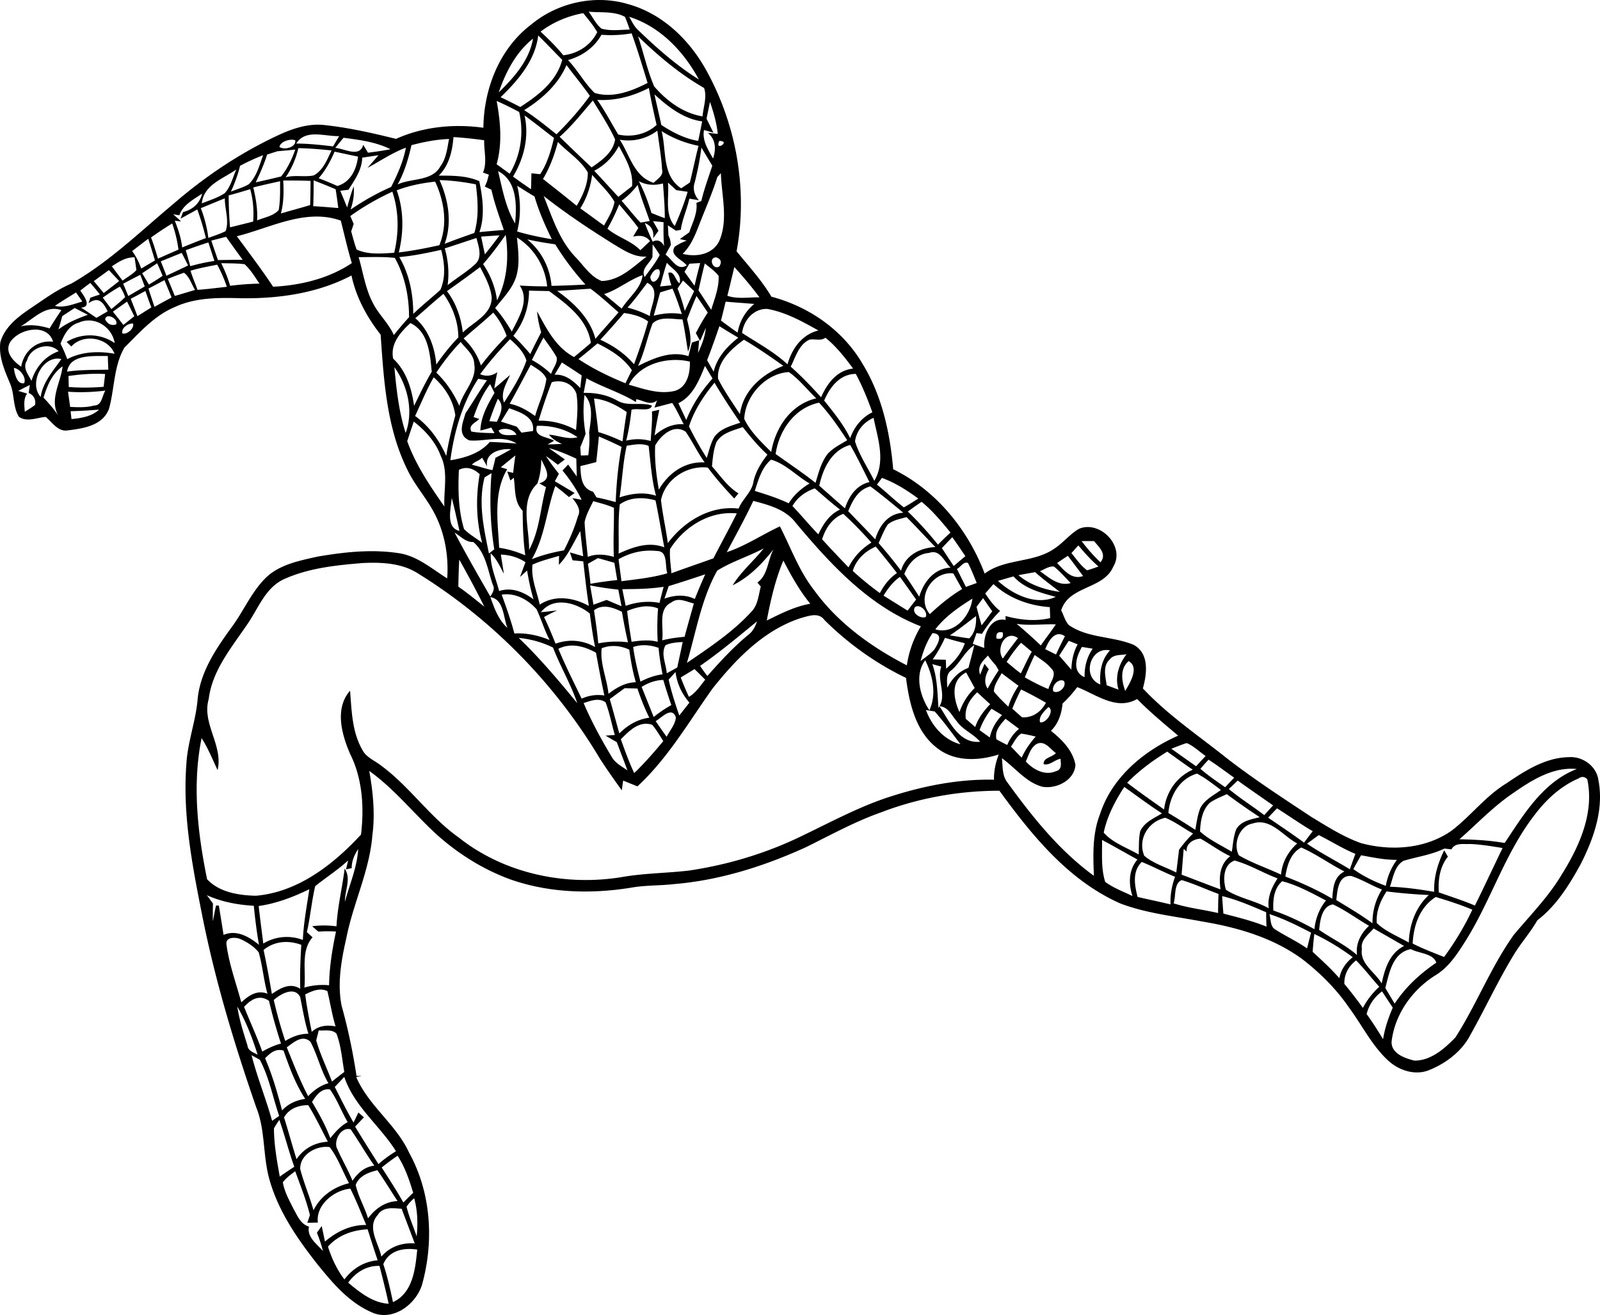 spiderman coloring pages kids printable - Coloring Printouts